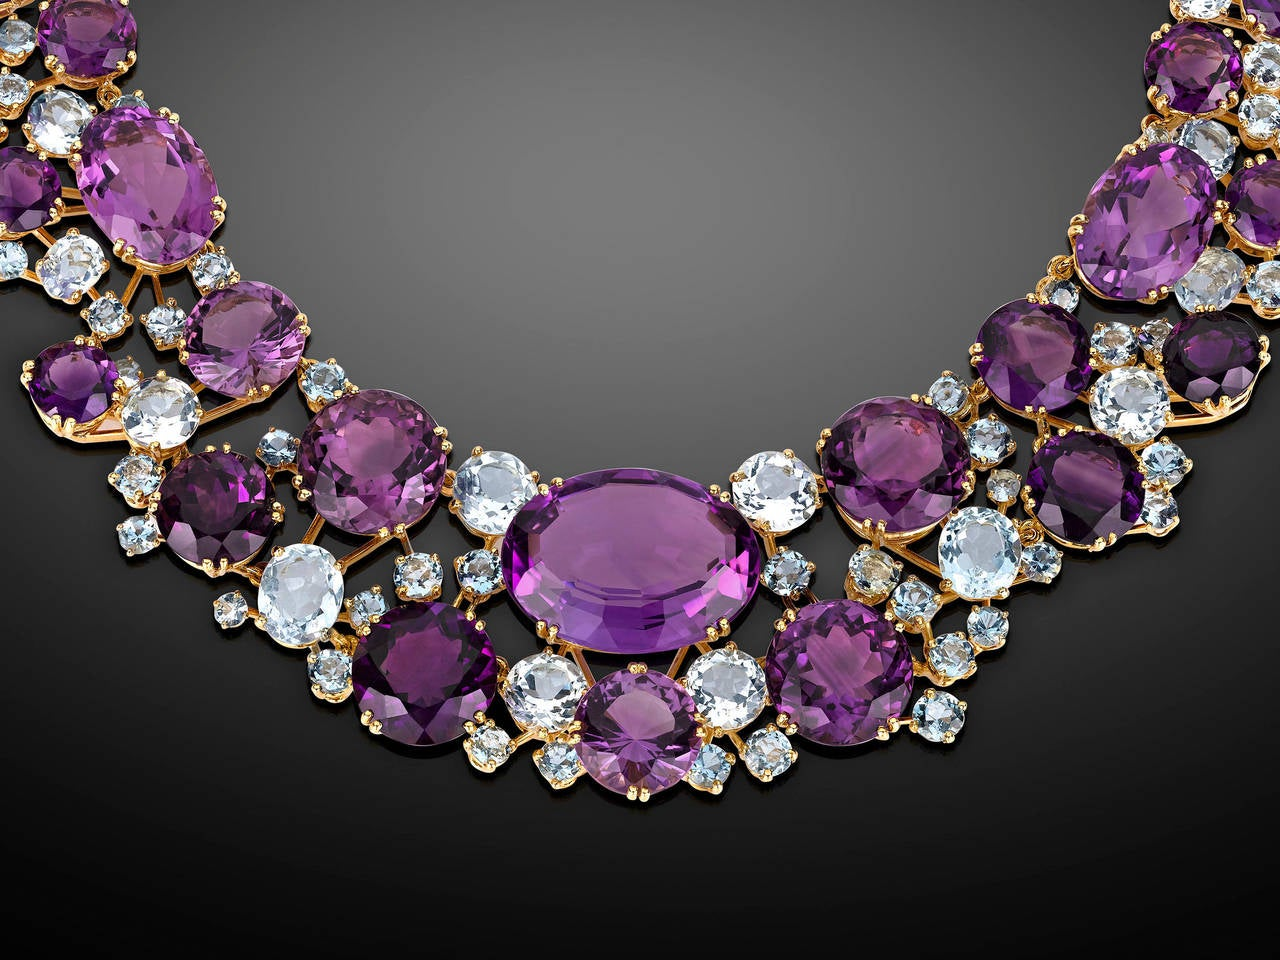 A breathtaking array of amethysts and aquamarines cascade around the neck in this timeless necklace by Verdura. Beautifully hued oval and circular-cut amethysts of graduated size rest amongst shimmering blue aquamarines that perfectly accentuate the